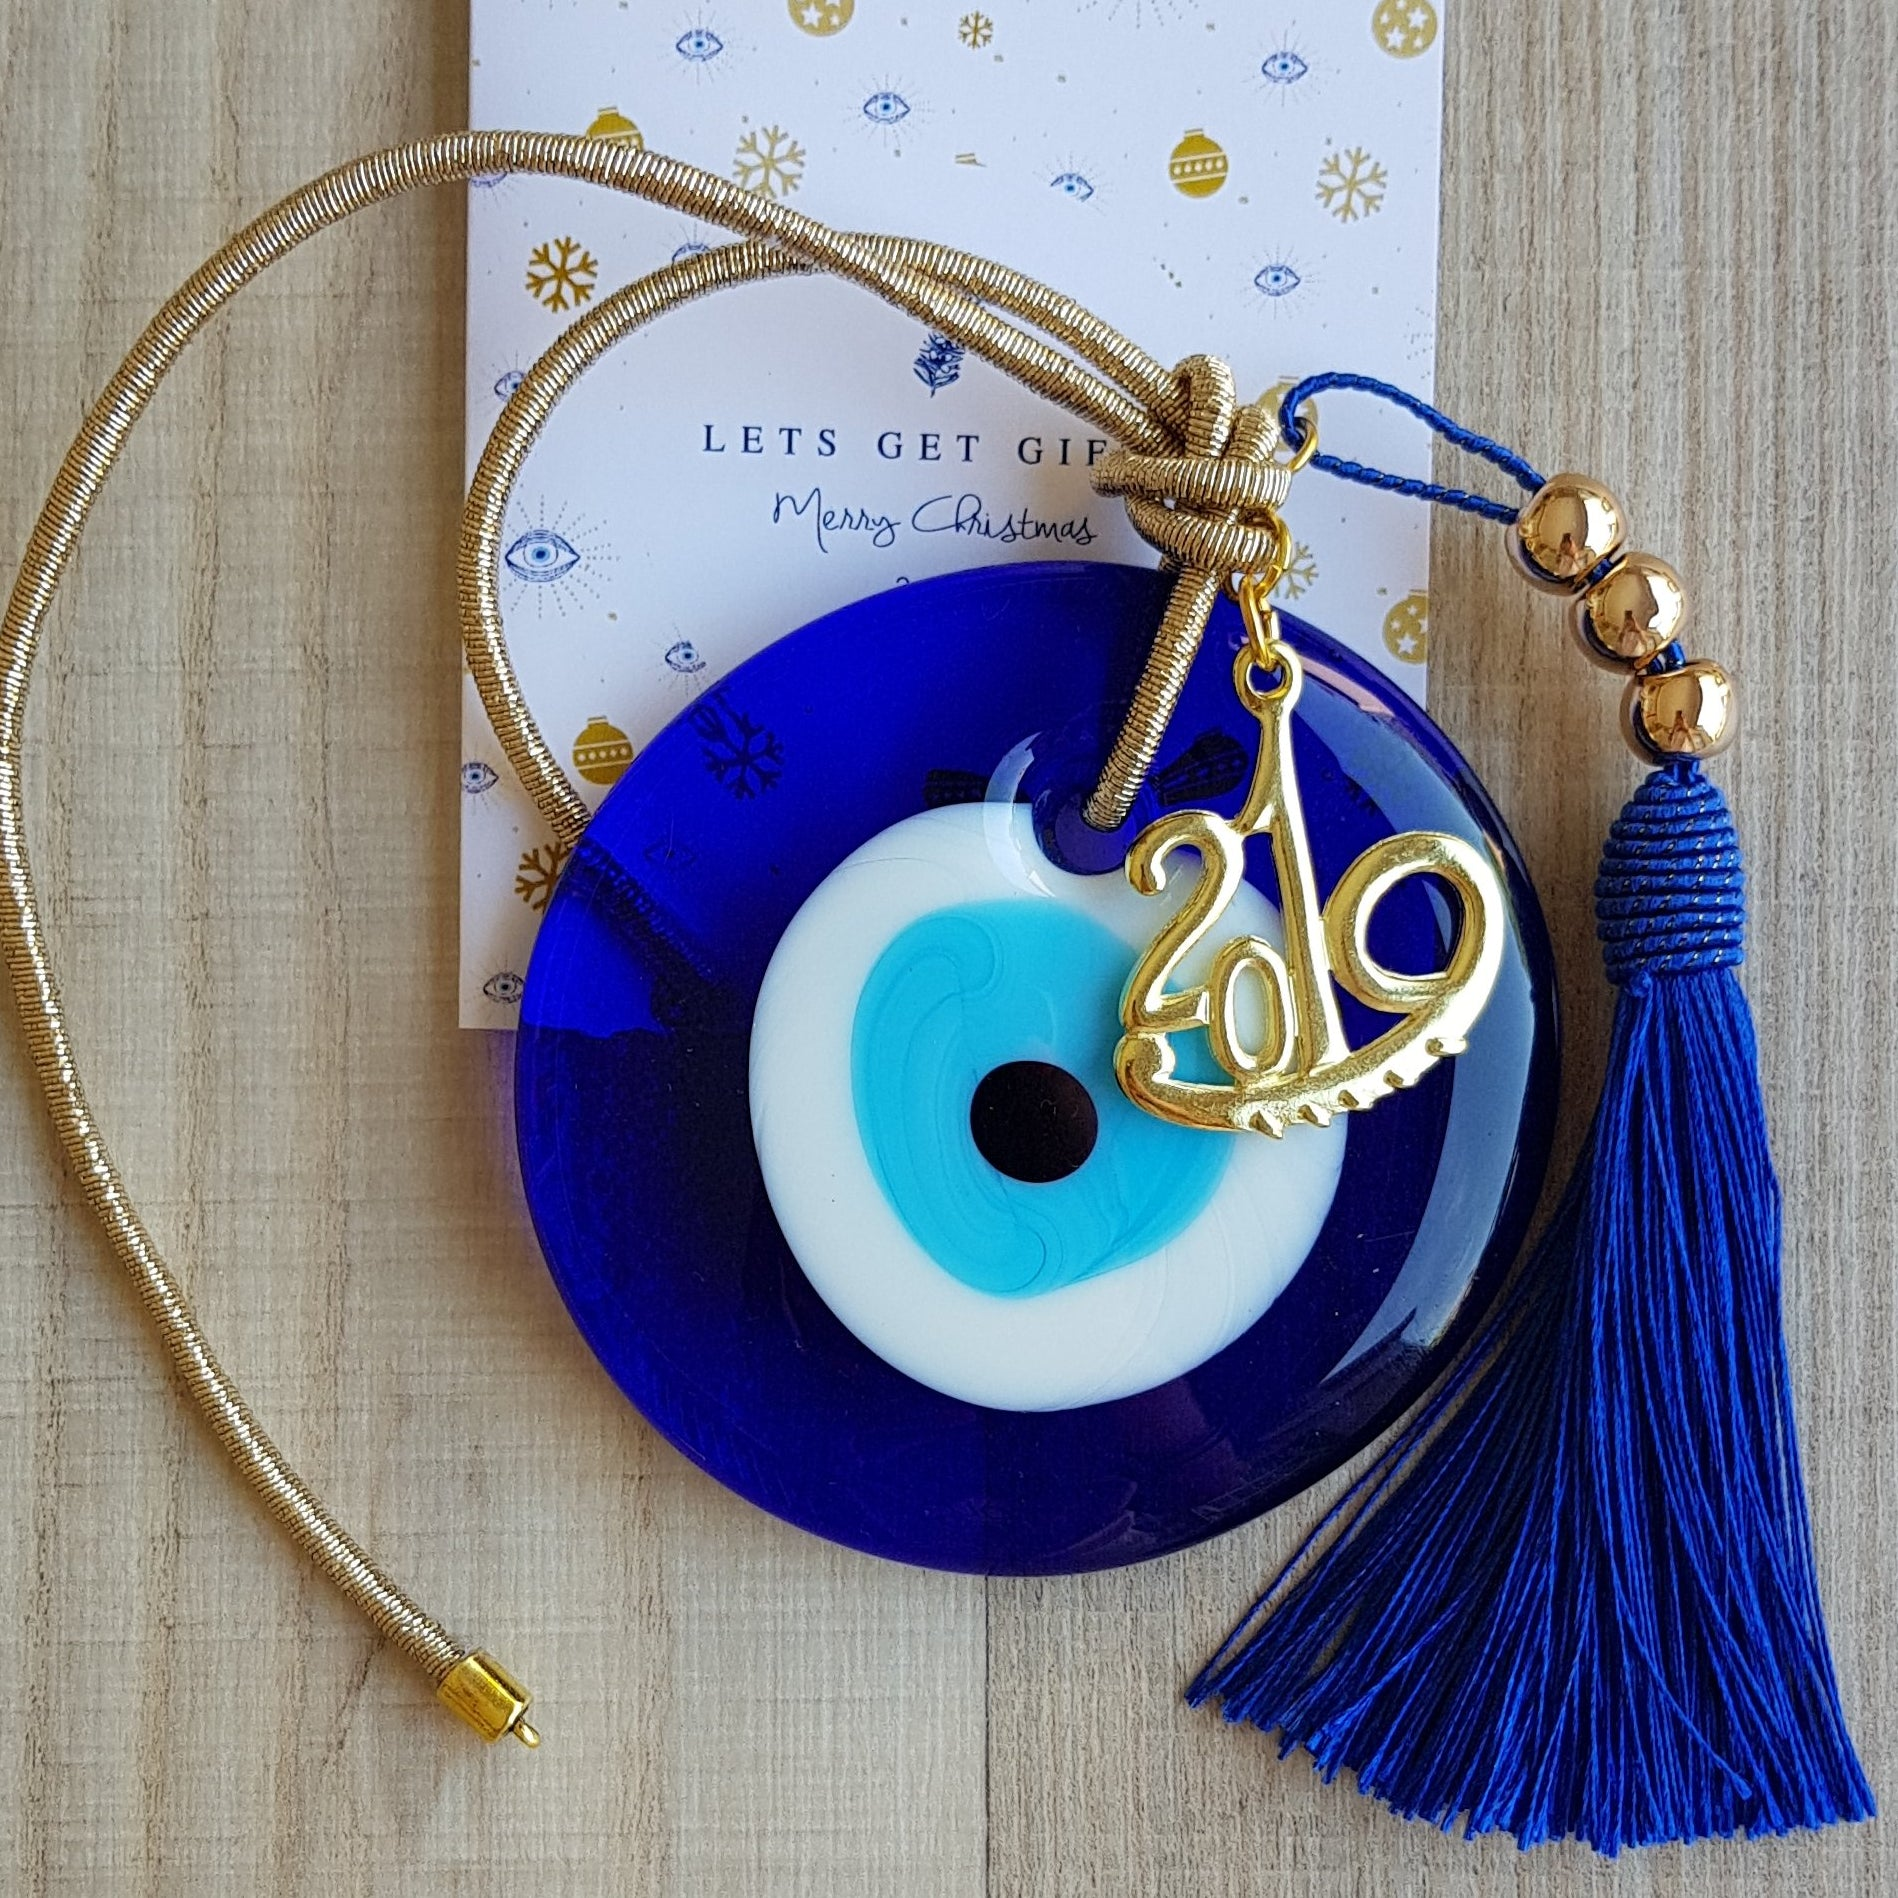 Gold mati wall hanging with blue tassel - Christmas collection